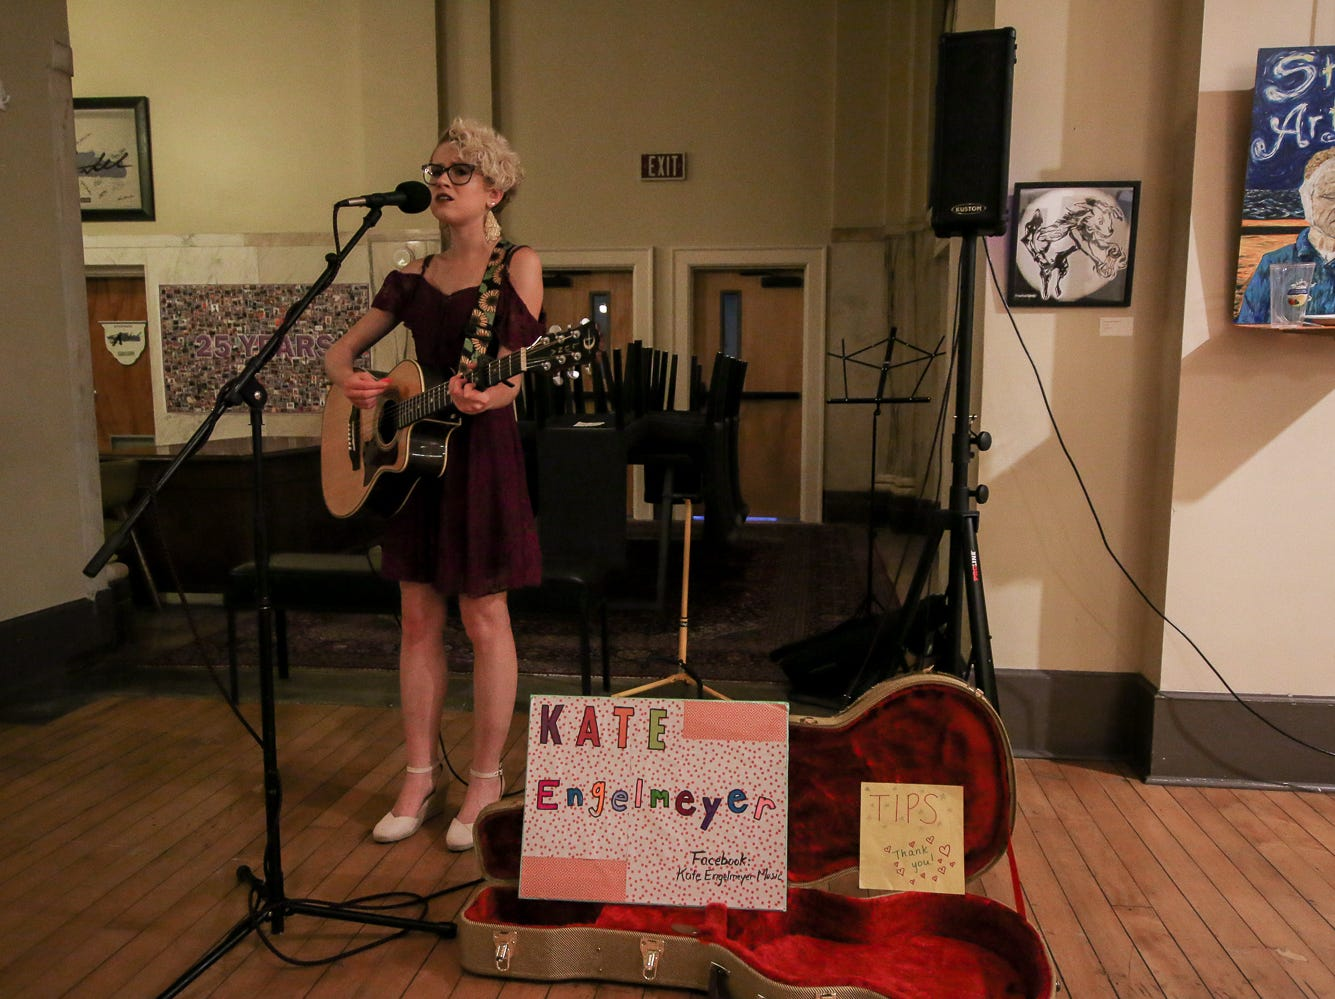 Kate Engelmeyer performs inside of Artel Gallery during Gallery Night on Friday, Sept. 21, 2018.